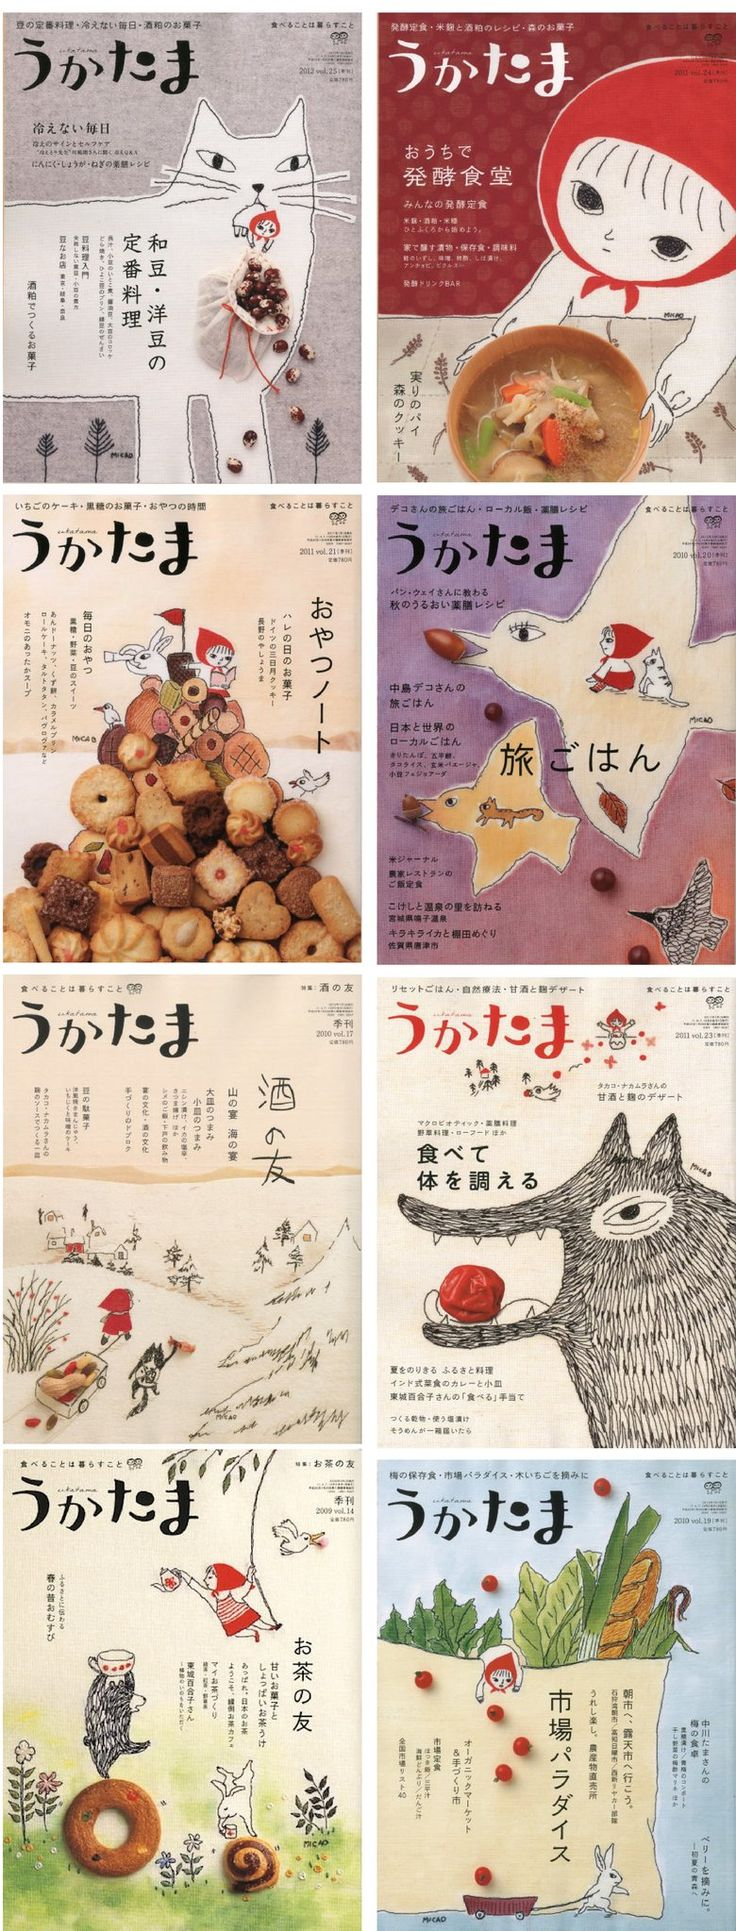 平佐実香(Micao)I hope this is #packaging because they are all so cute : ) PD